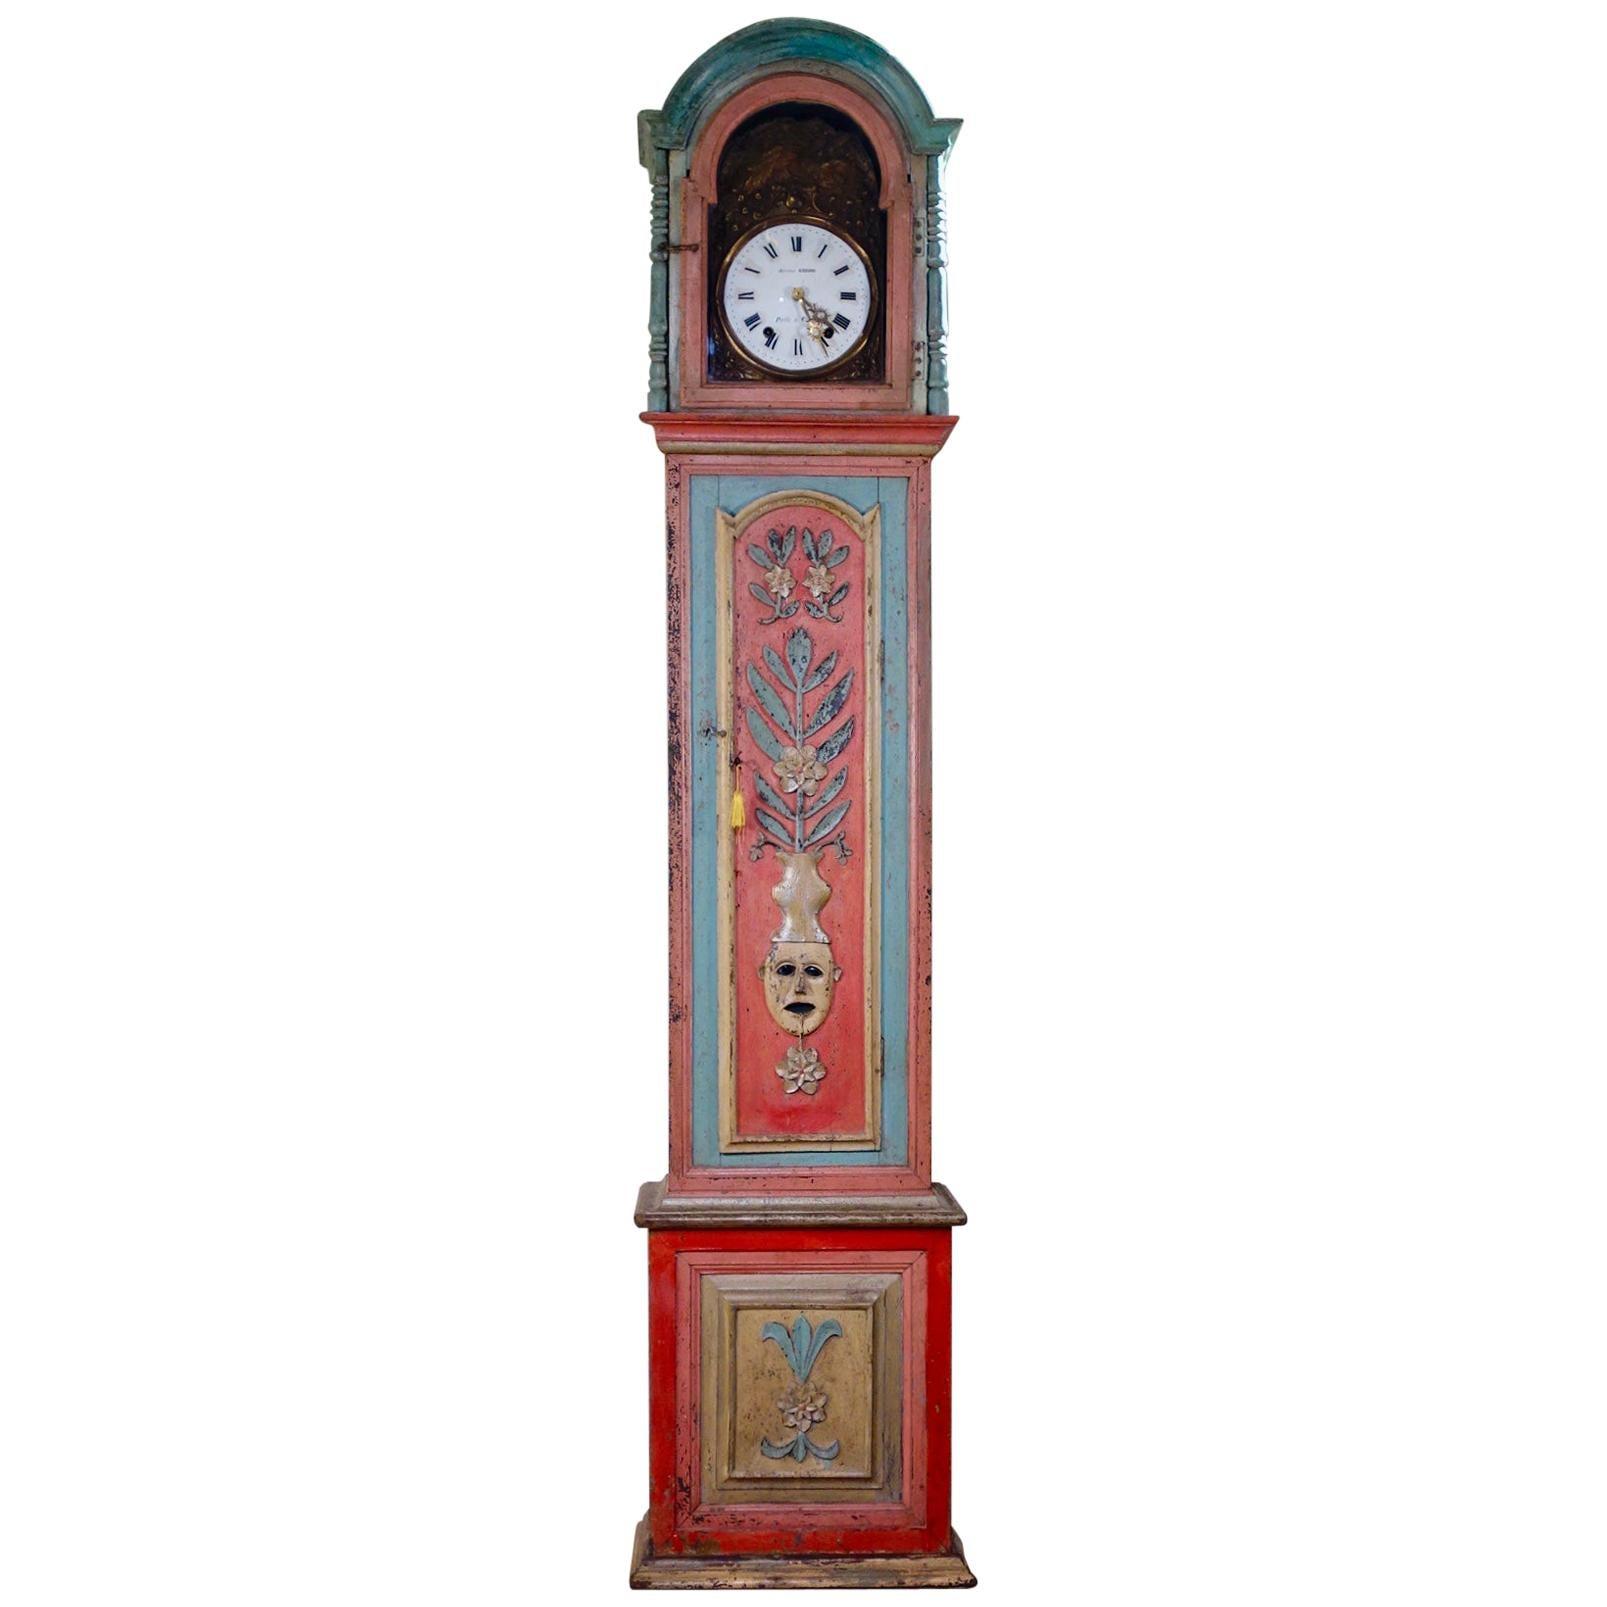 18th Century And Earlier Clocks 396 For Sale At 1stdibs